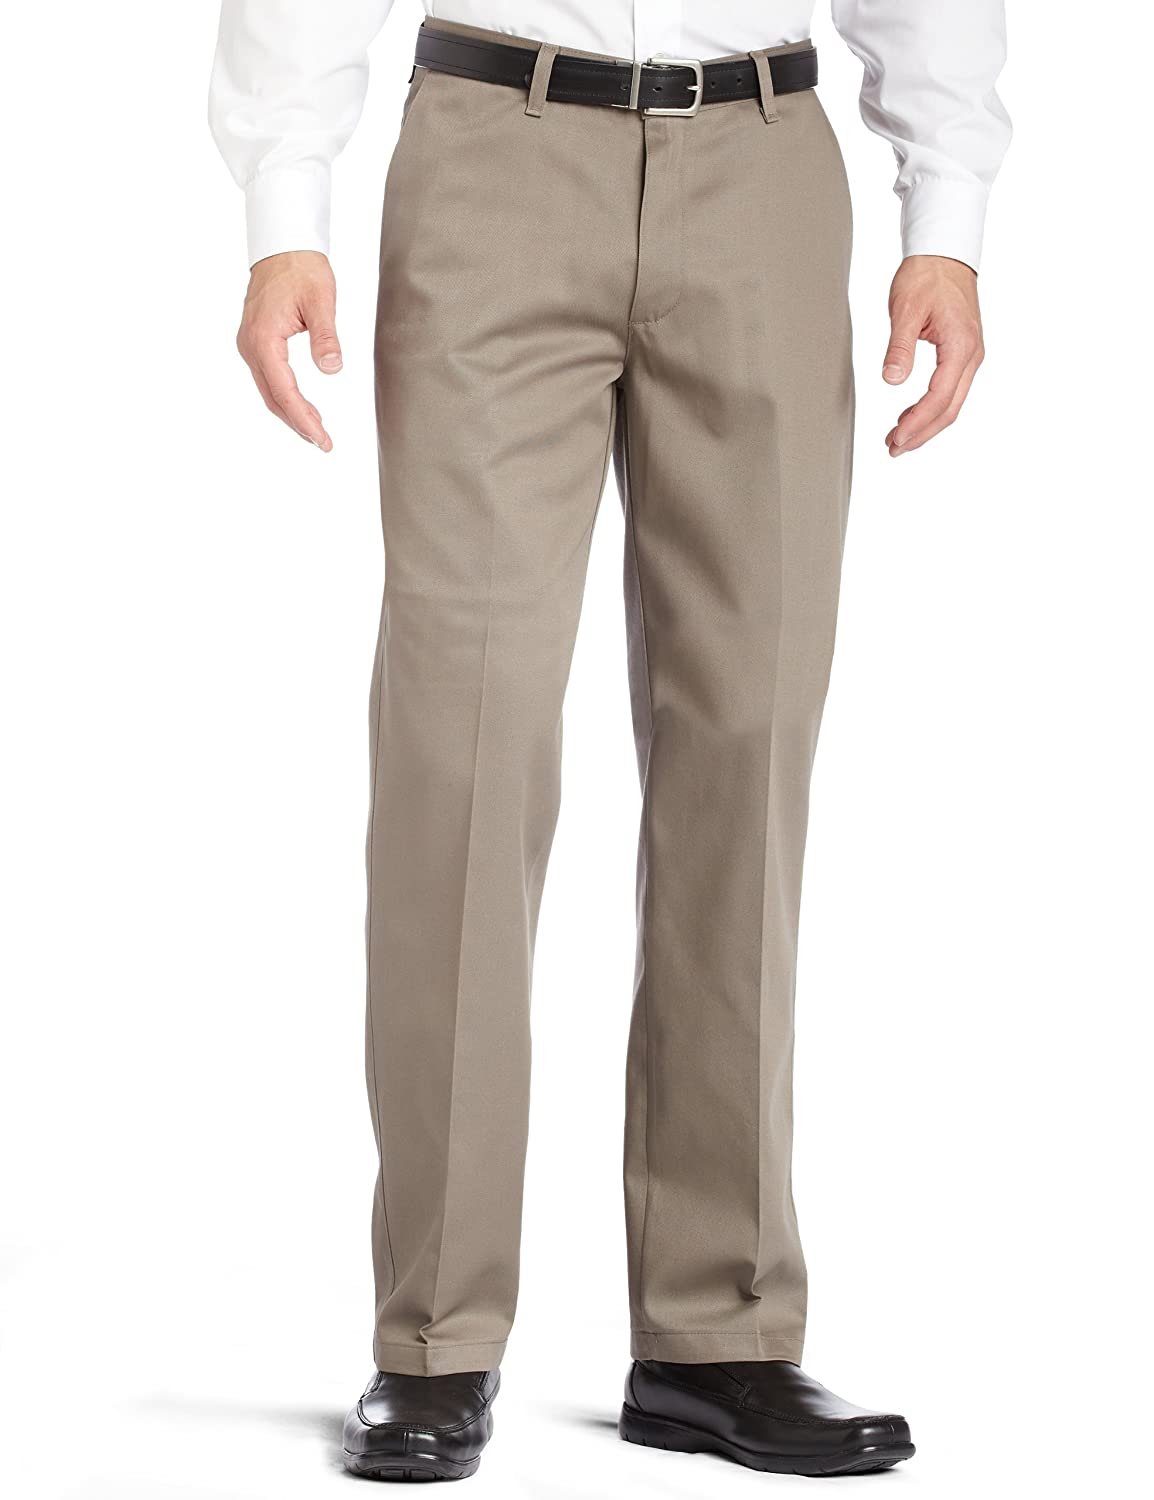 LEE Men's Stain Resistant Relaxed Fit Flat Front Pant 41820